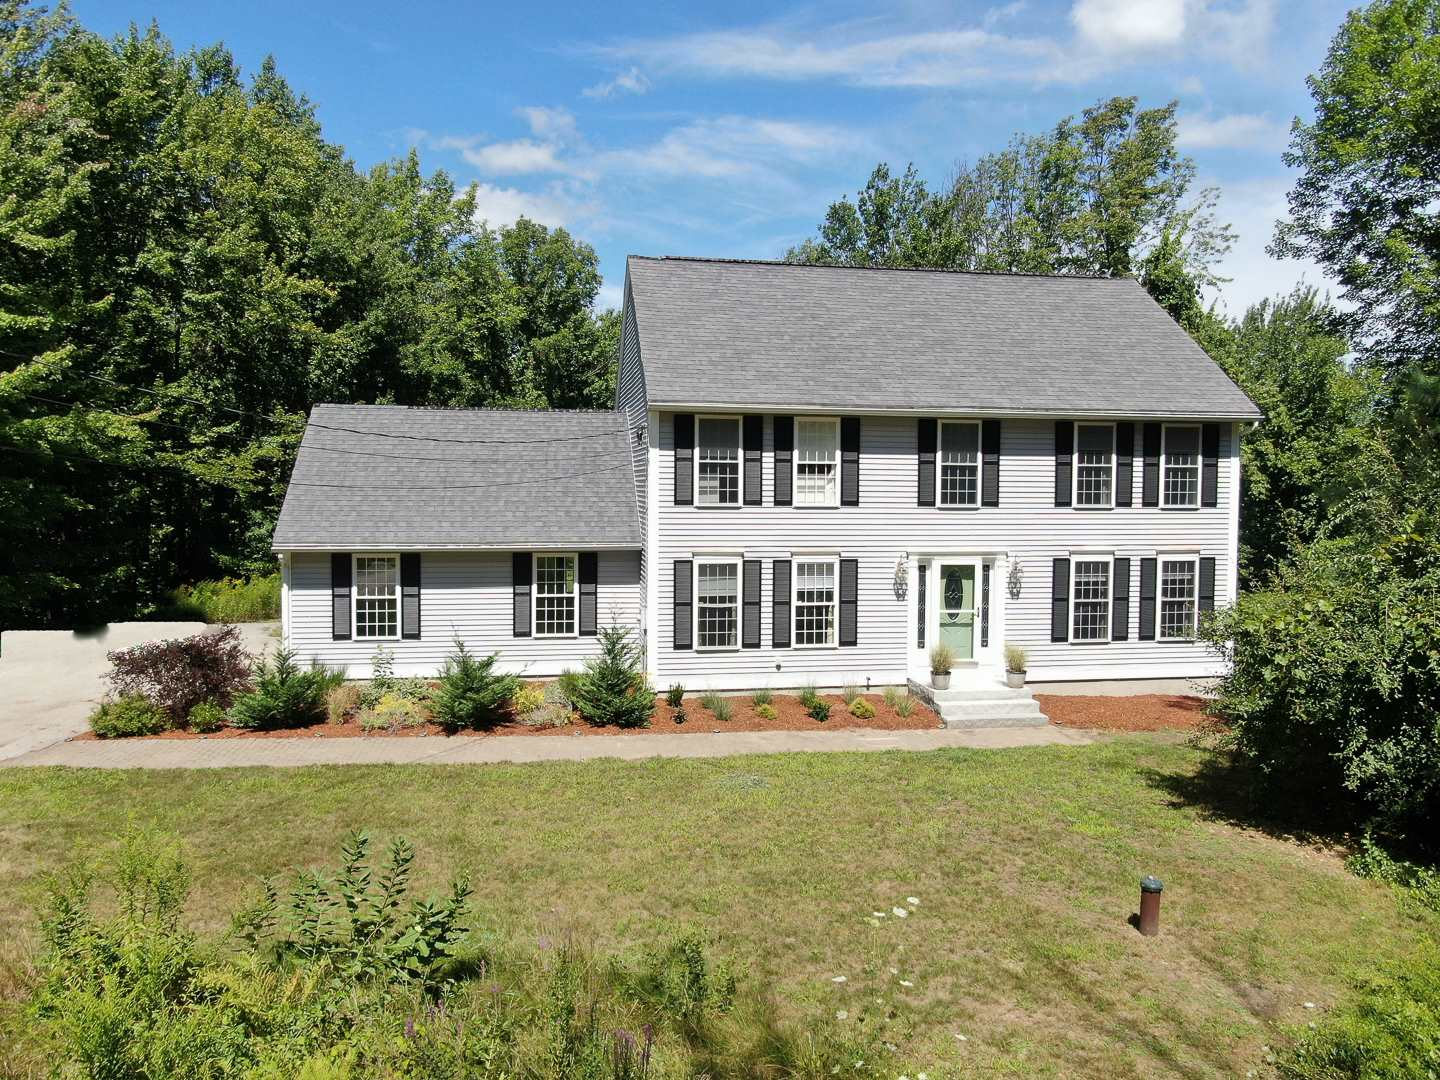 Photo of 142 Foster Road Milford NH 03055